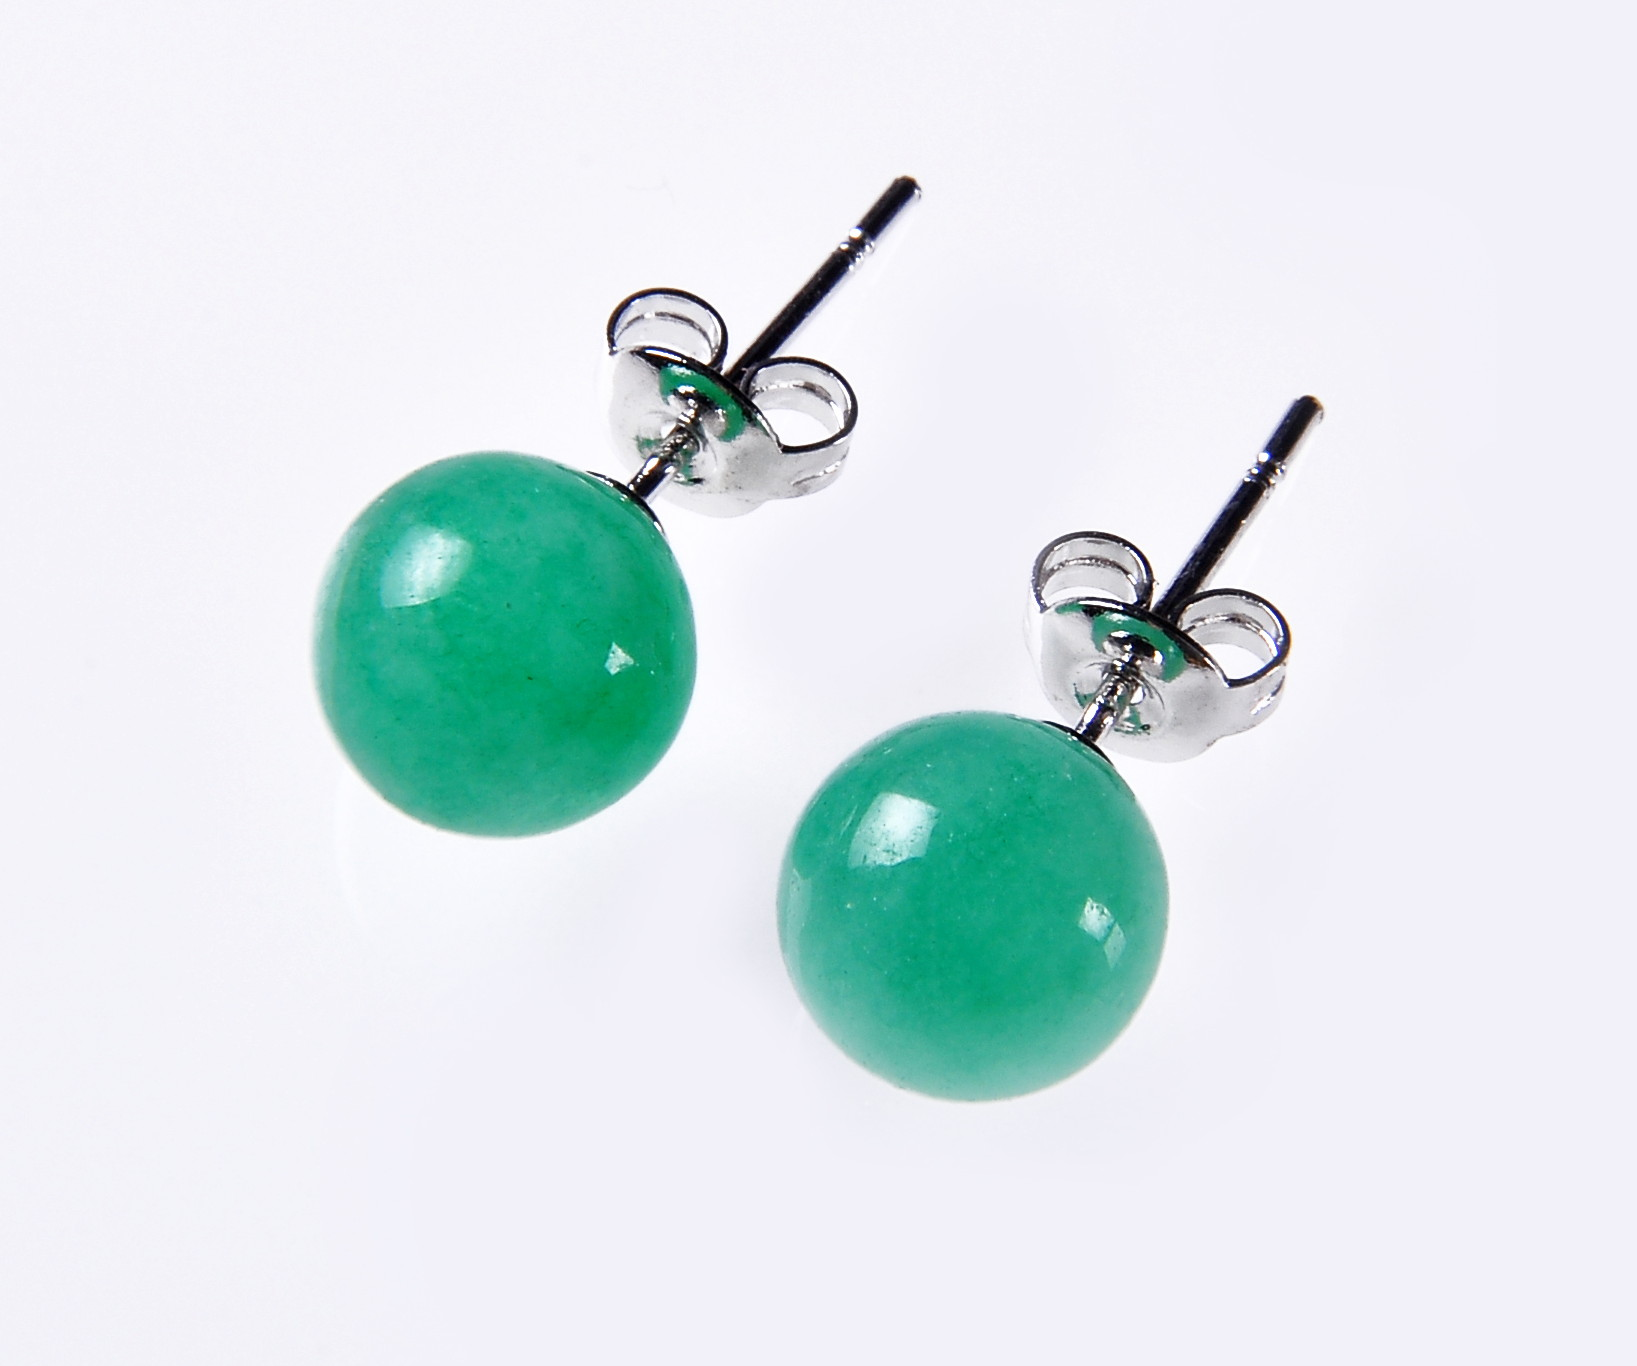 8.5 mm Green Malay Jade Stud Earrings  - er-jd3